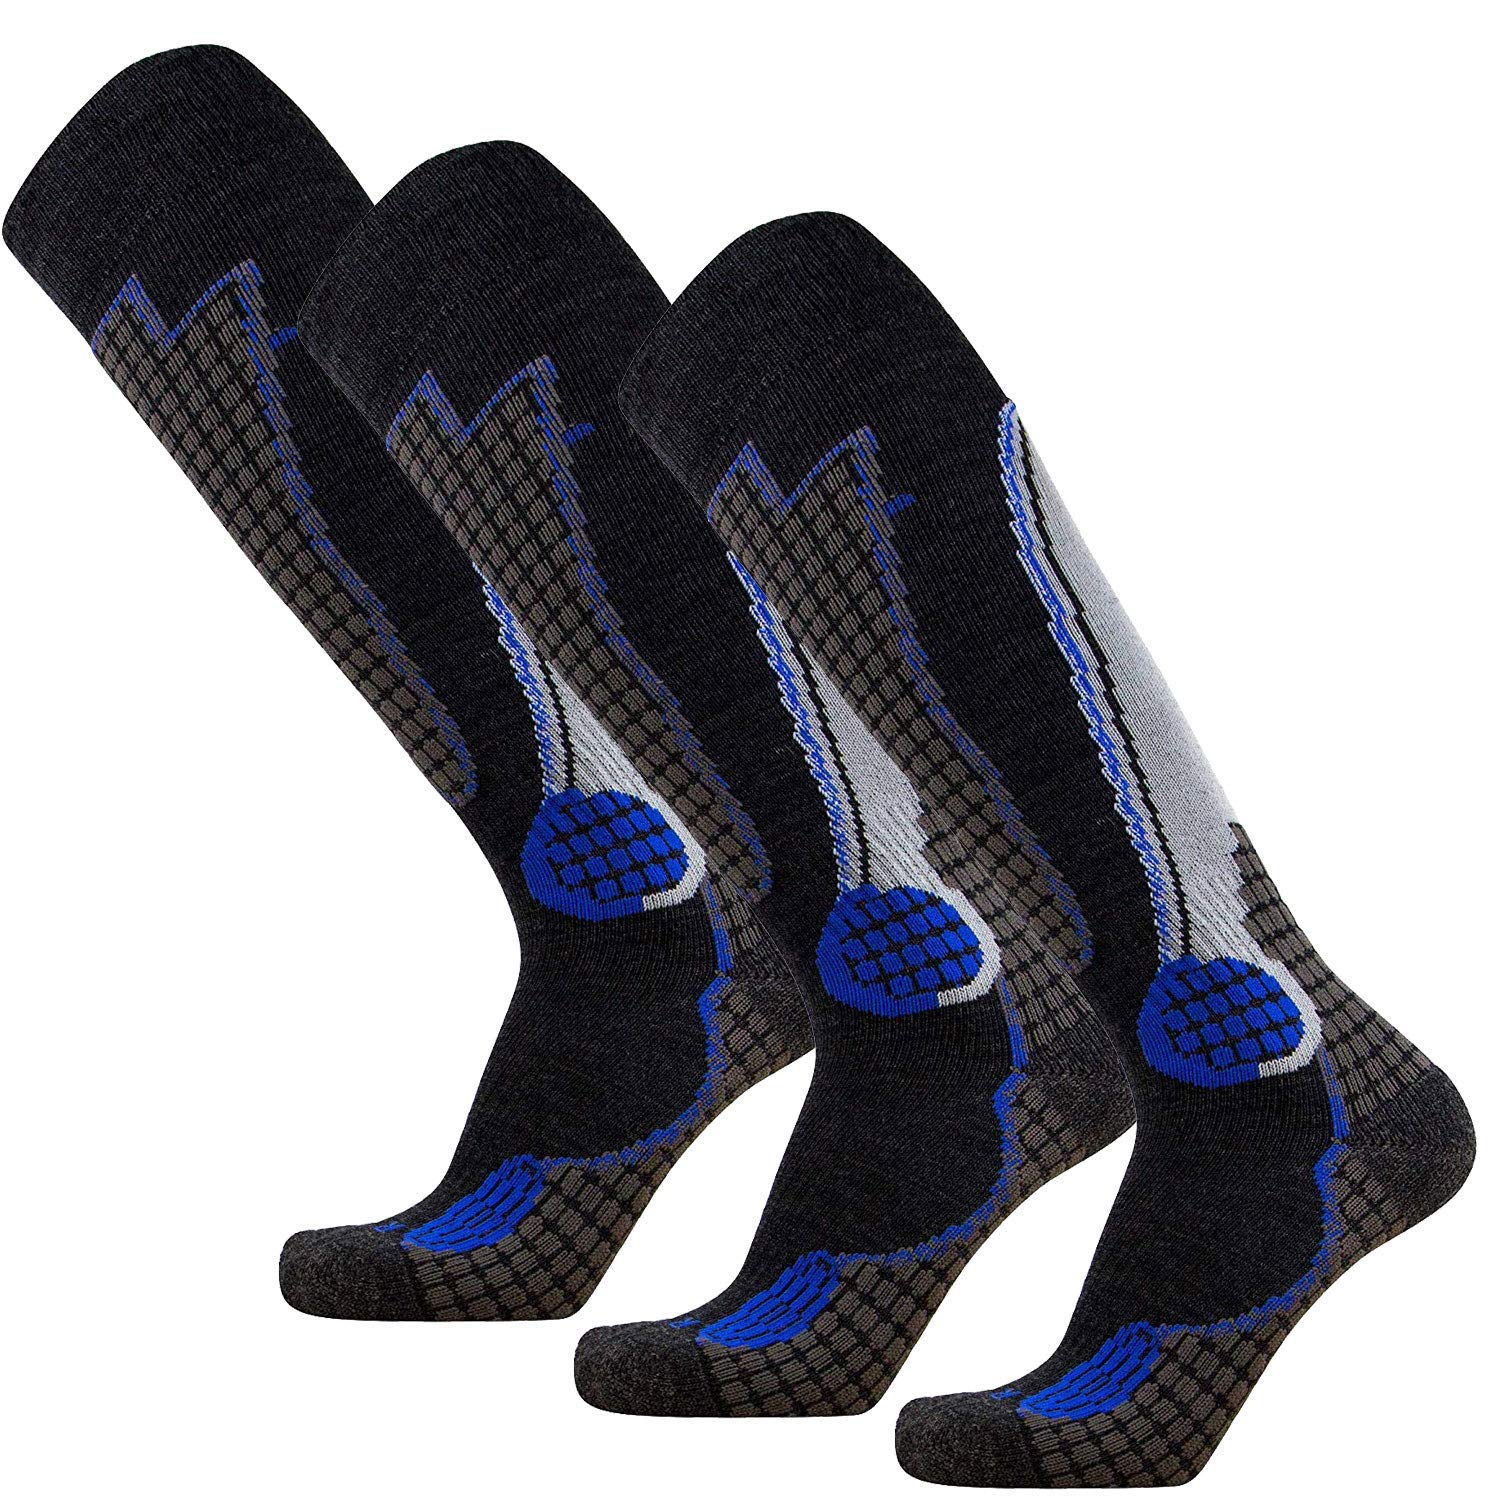 Pure Athlete High Performance Wool Ski Socks – Outdoor Wool Skiing Socks, Snowboard Socks (Black/Grey/Blue - 3 Pack, Small)